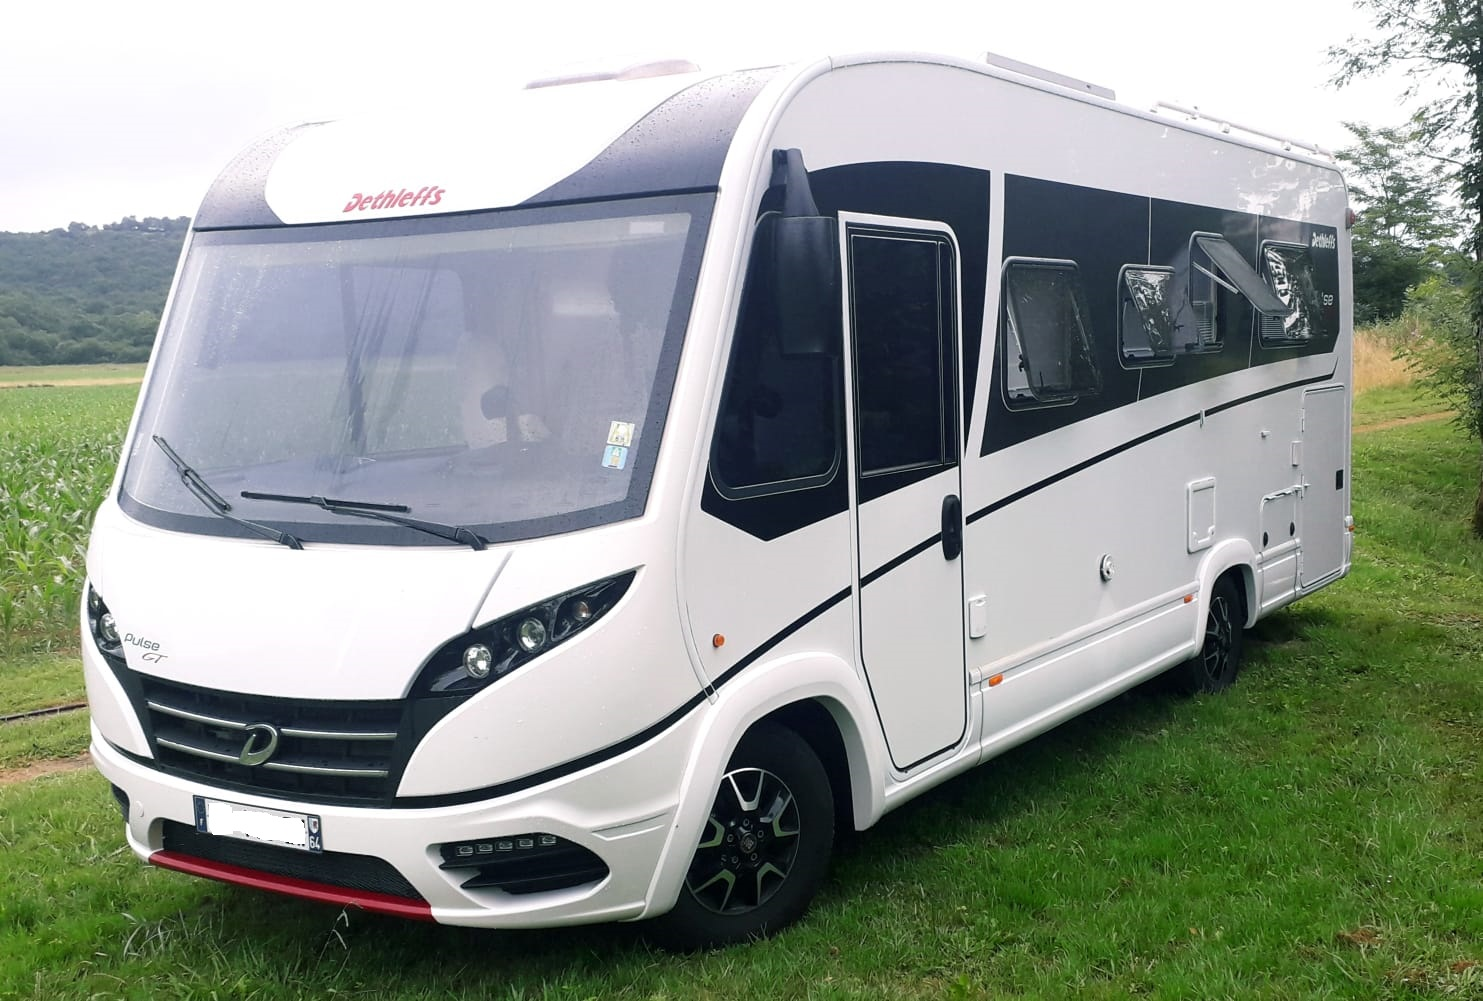 Superbe Dethleffs Pulse gt 2.3 jtd 150 cv bv6